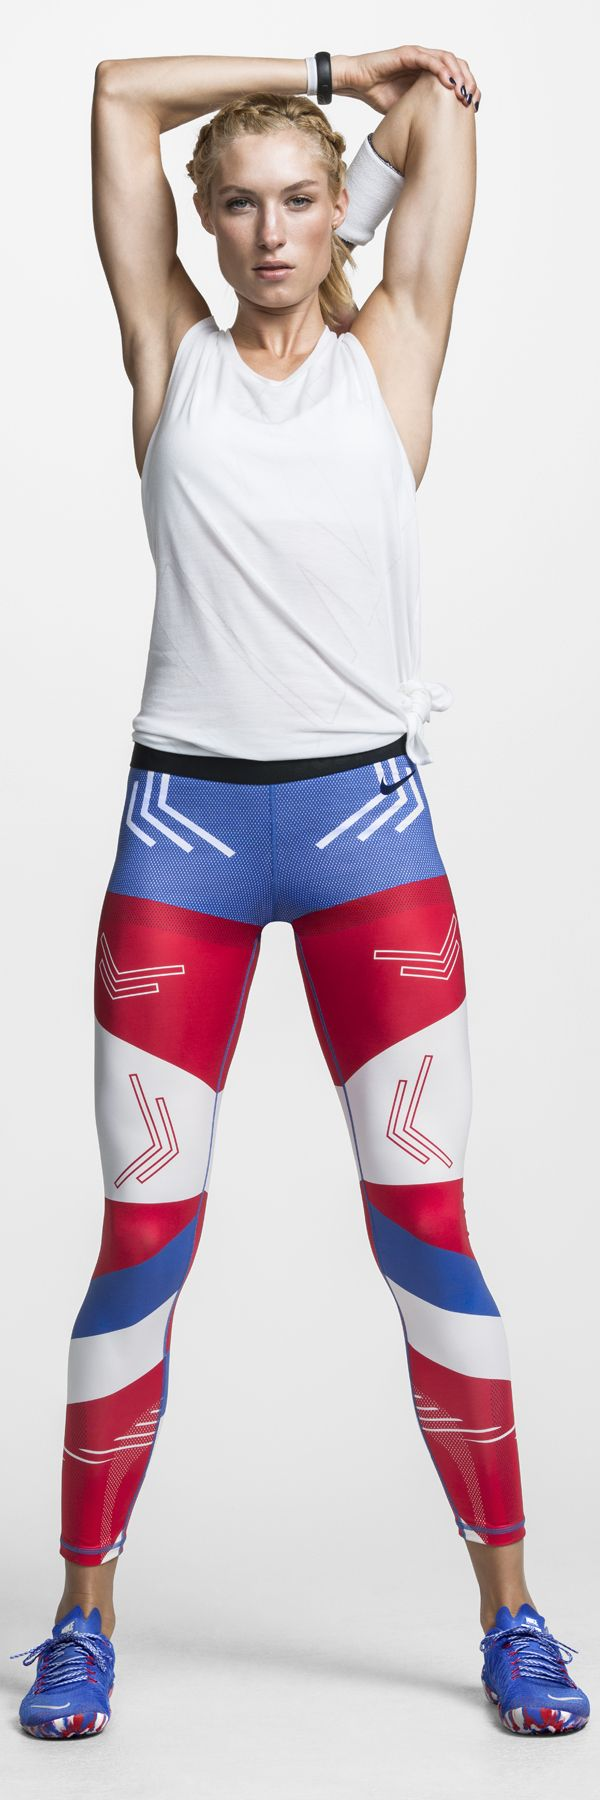 As bold as you are. The Nike Tight of the Moment x USA.